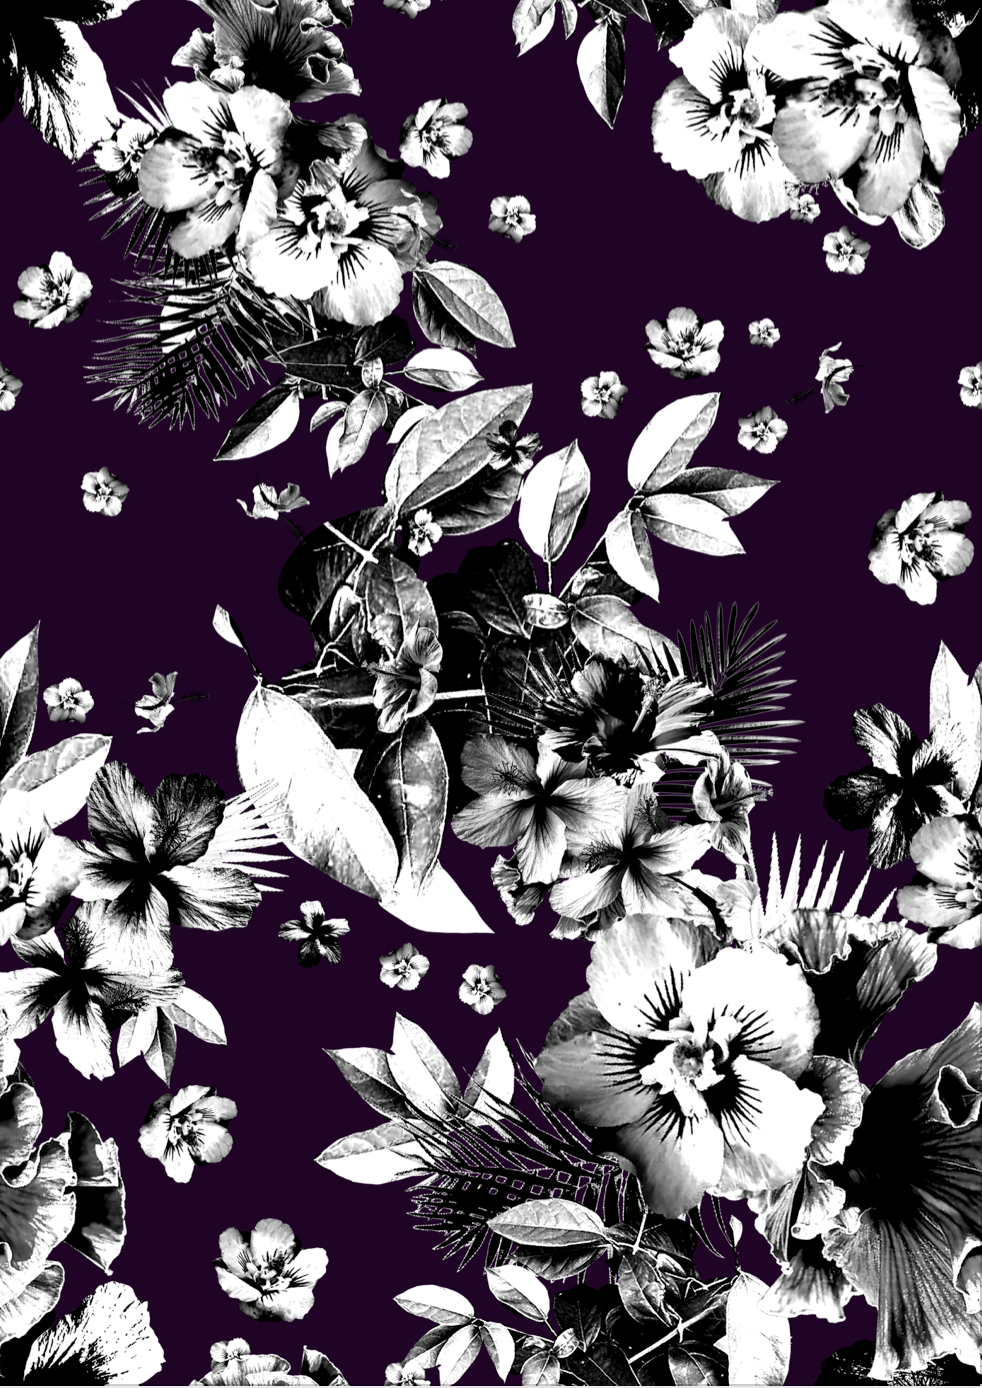 Dark Tropics Print project on Behance